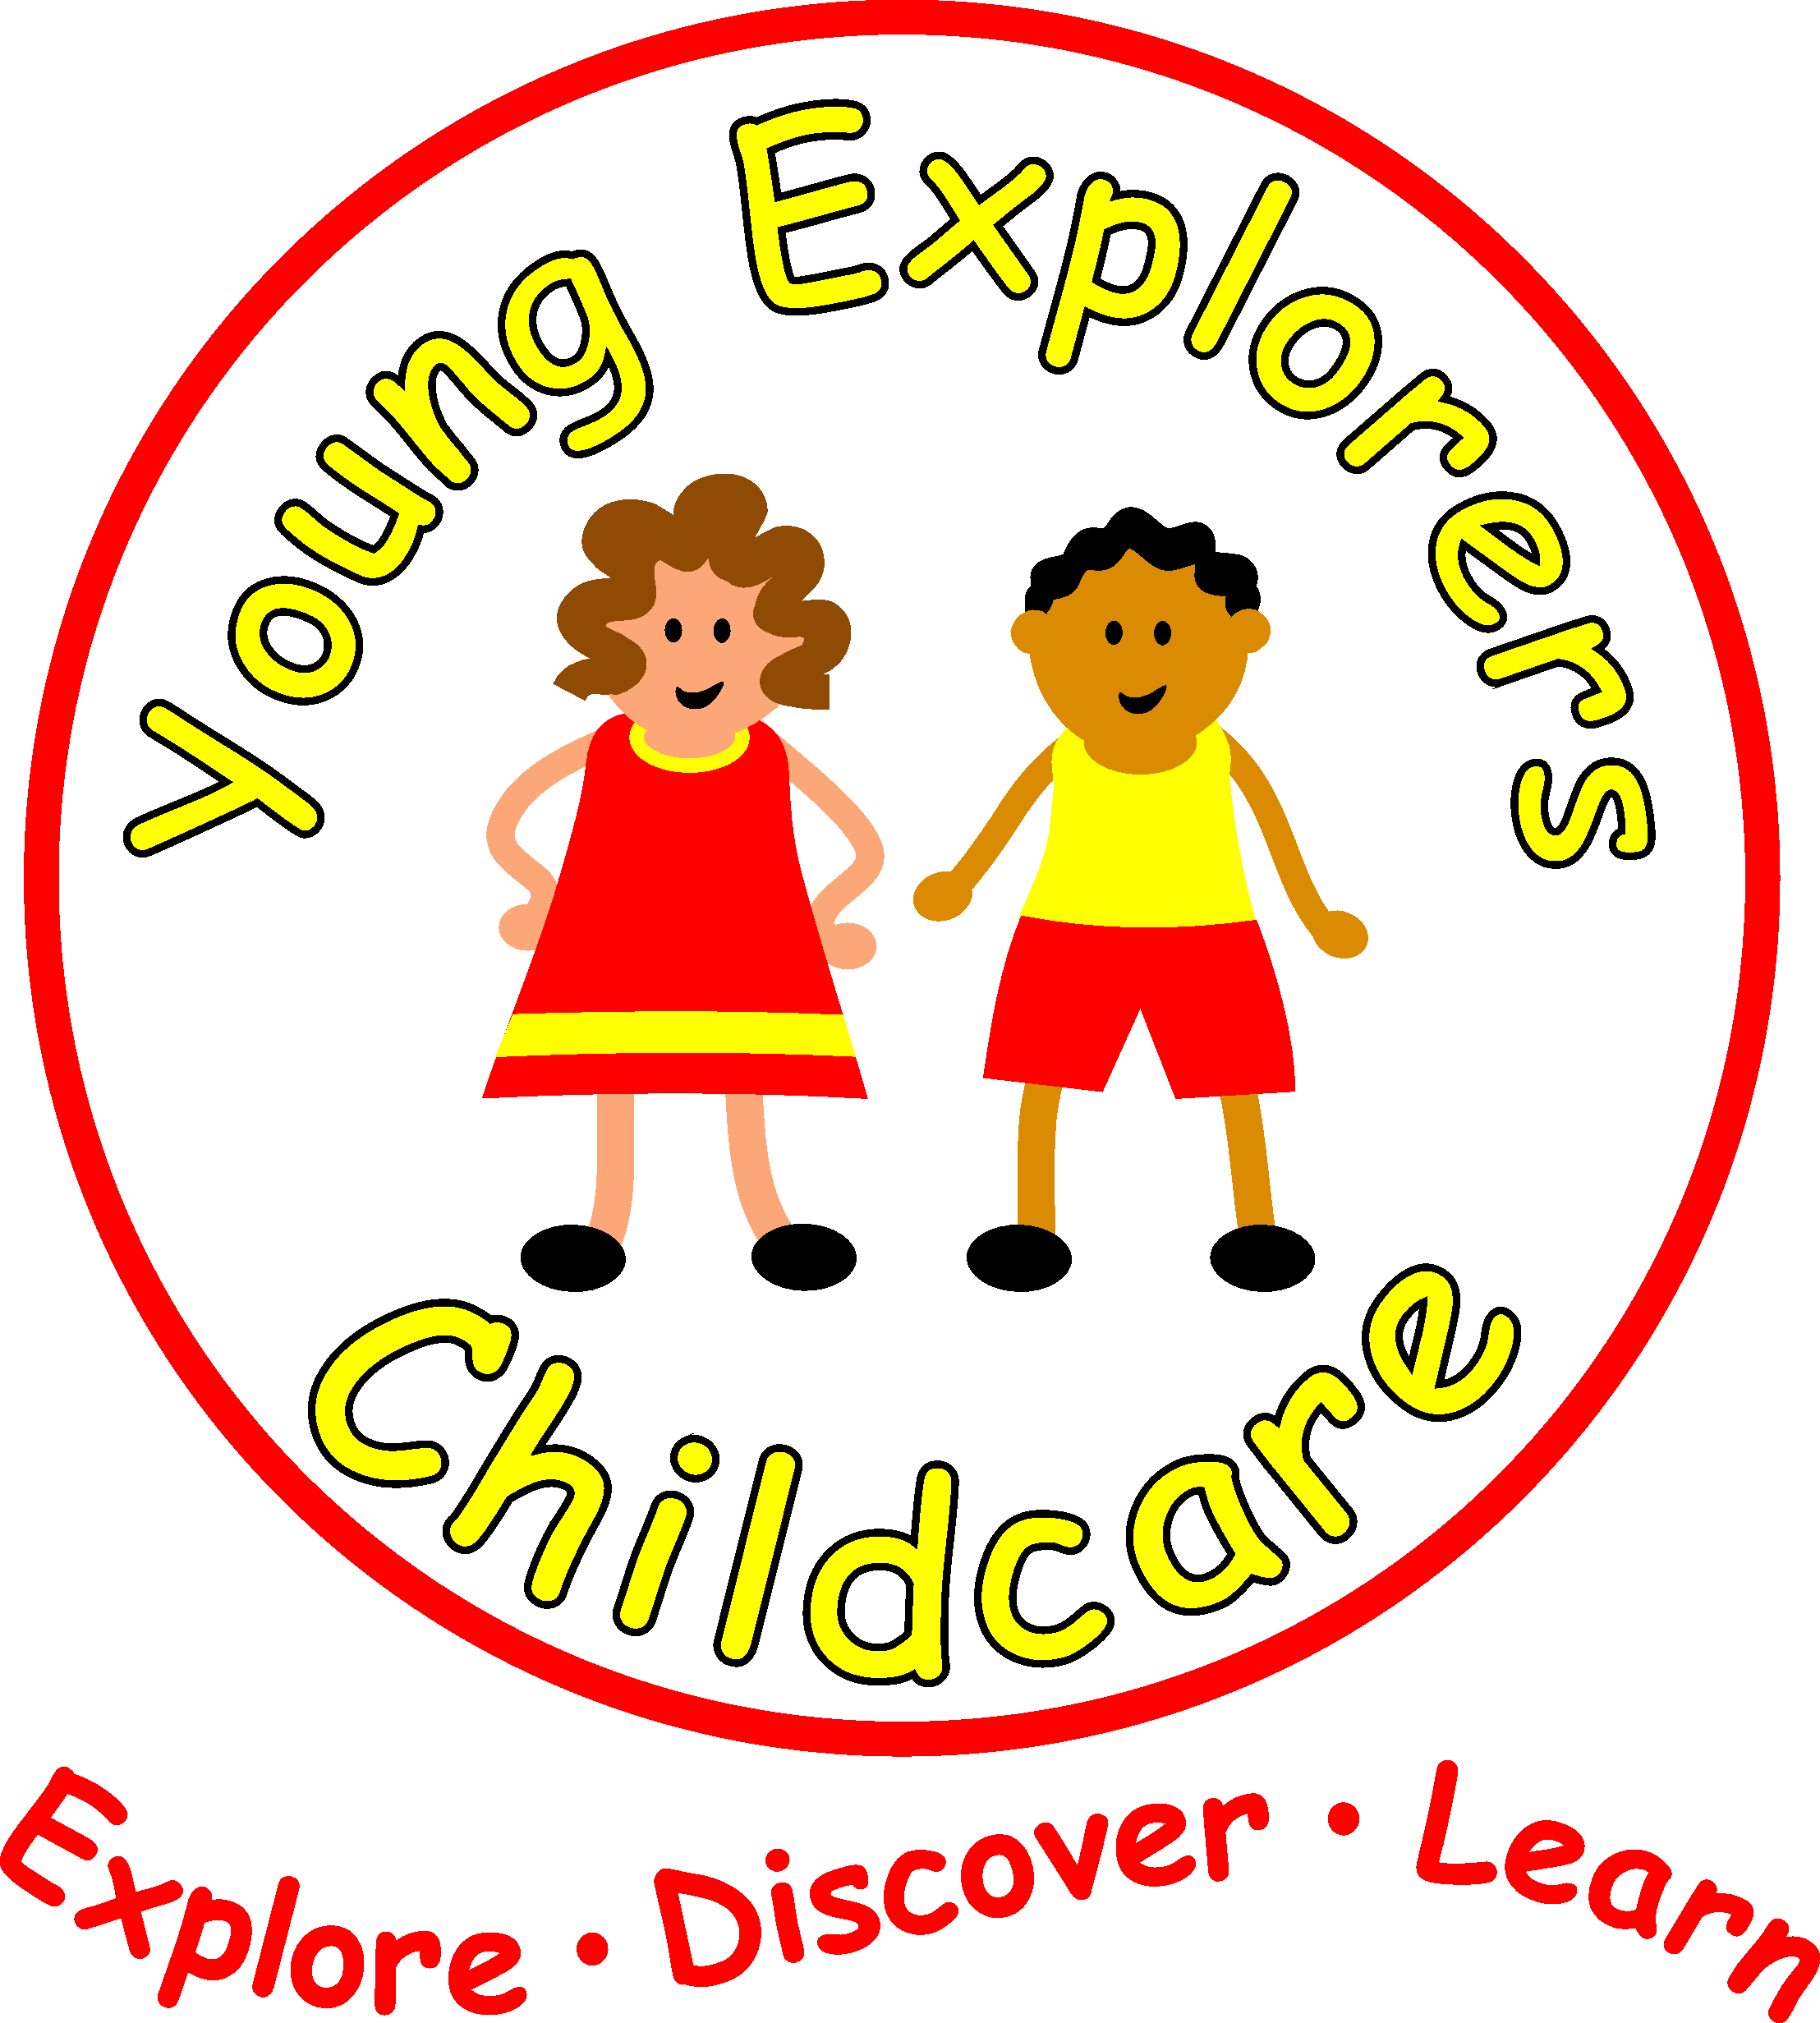 Young Explorers Childcare